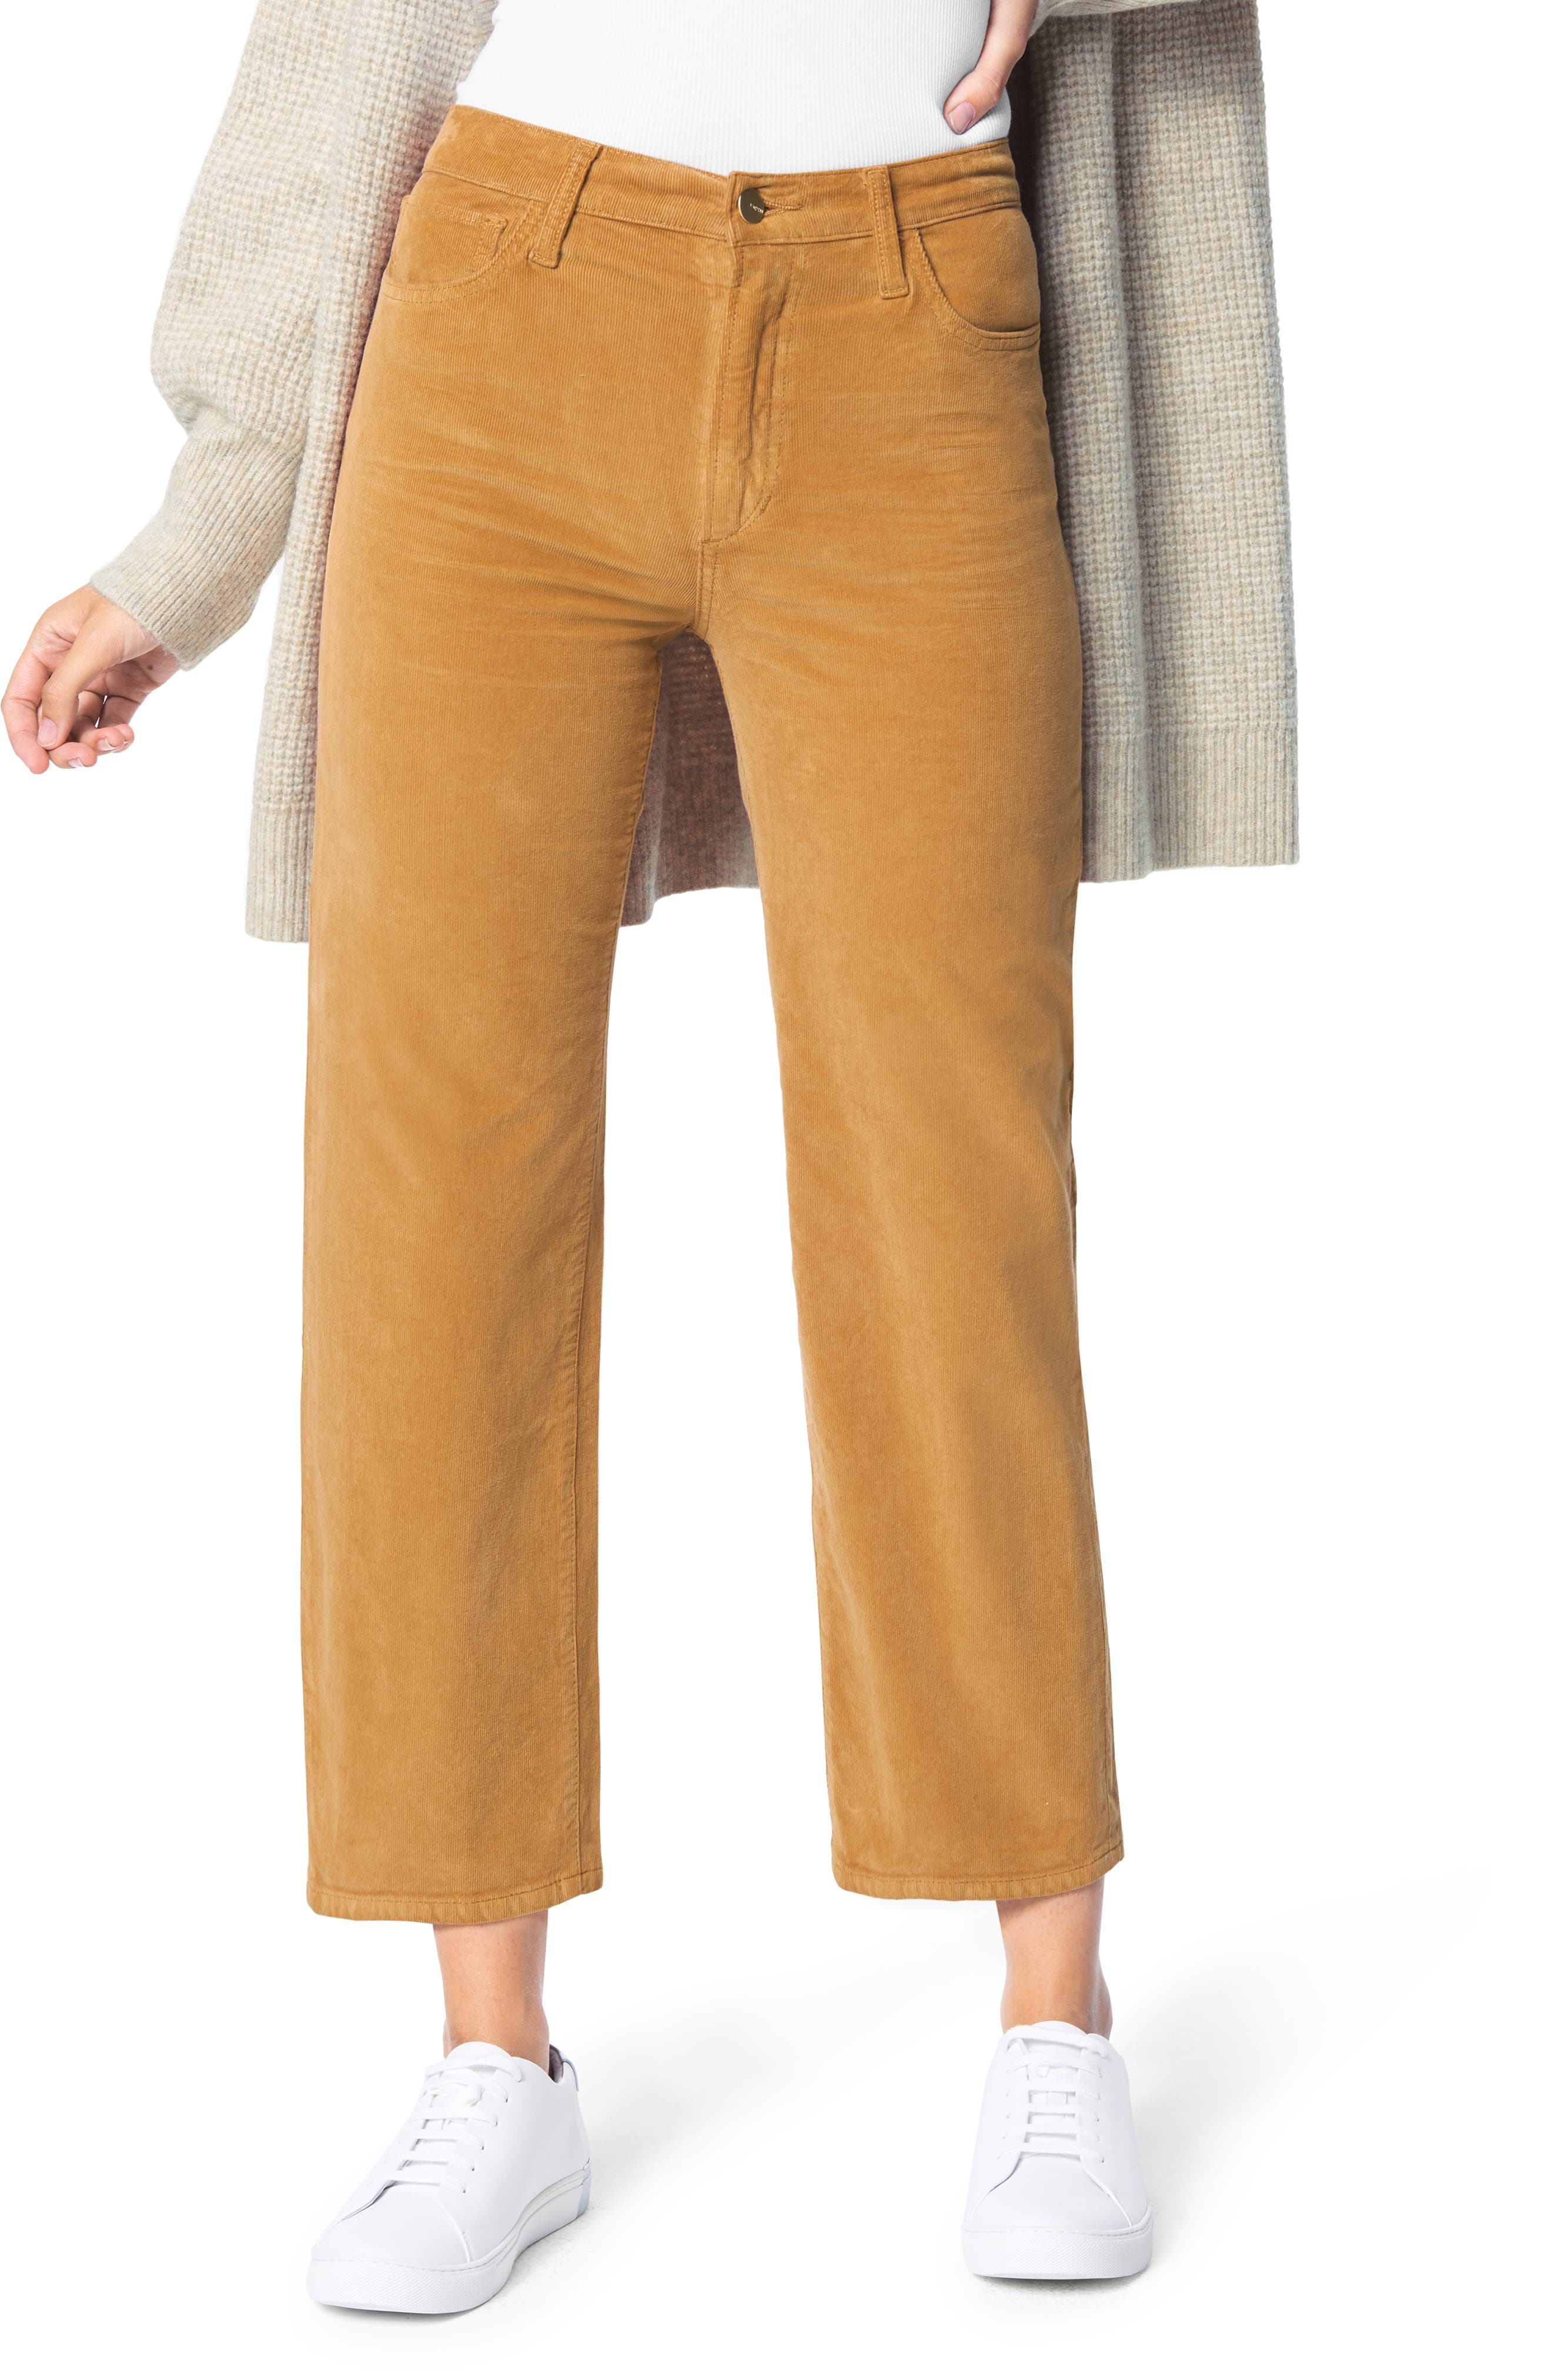 Huyghdfb Womens Straight Leg Pants Corduroy Mid Waist Patchwork Corduroy Pants Casual Trousers with Pockets